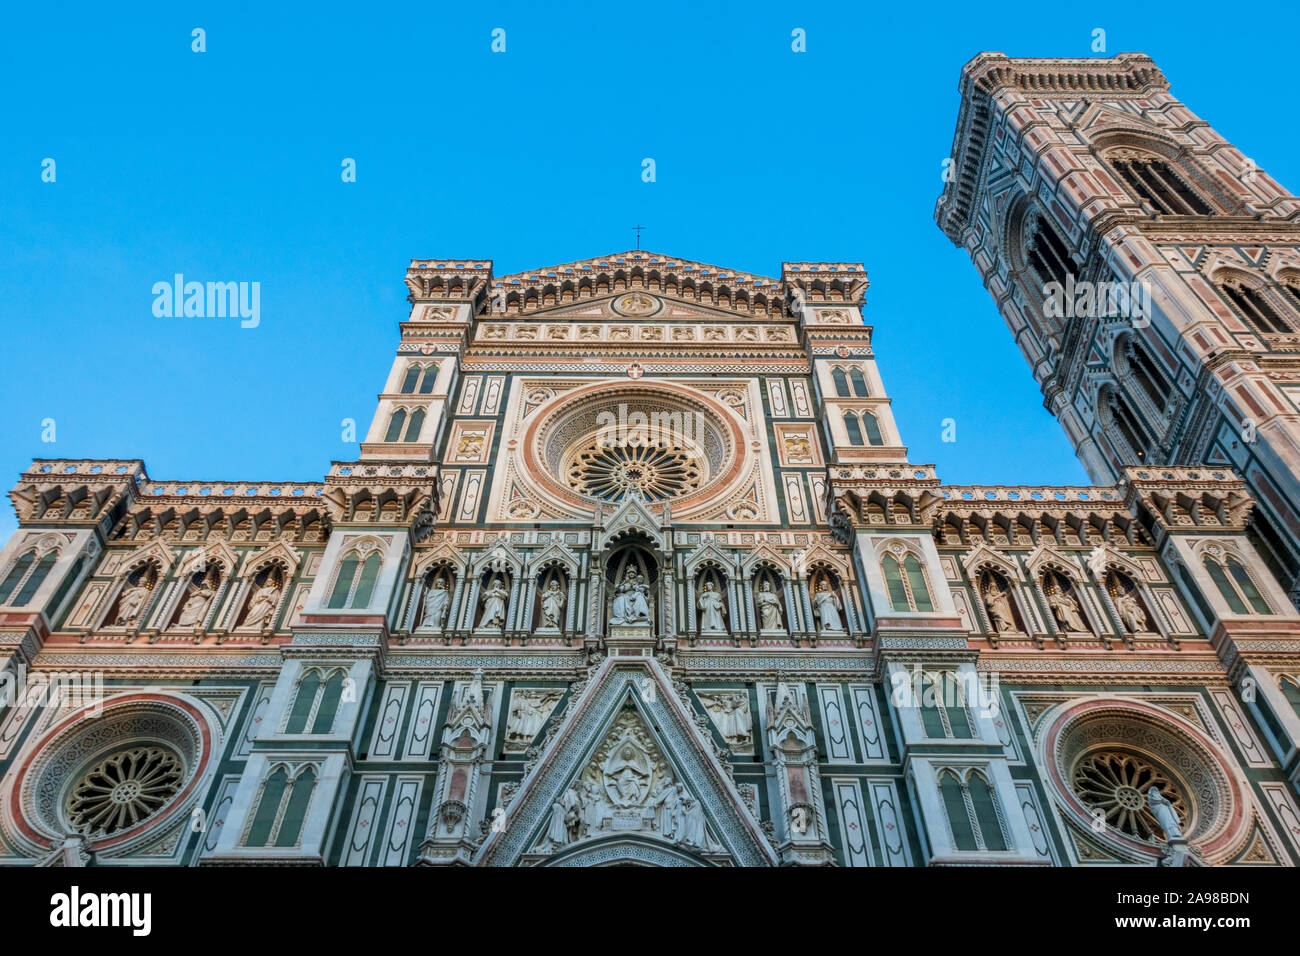 The Cathedral of Santa Maria del Fiore in Florence, Tuscany, Italy Stock Photo